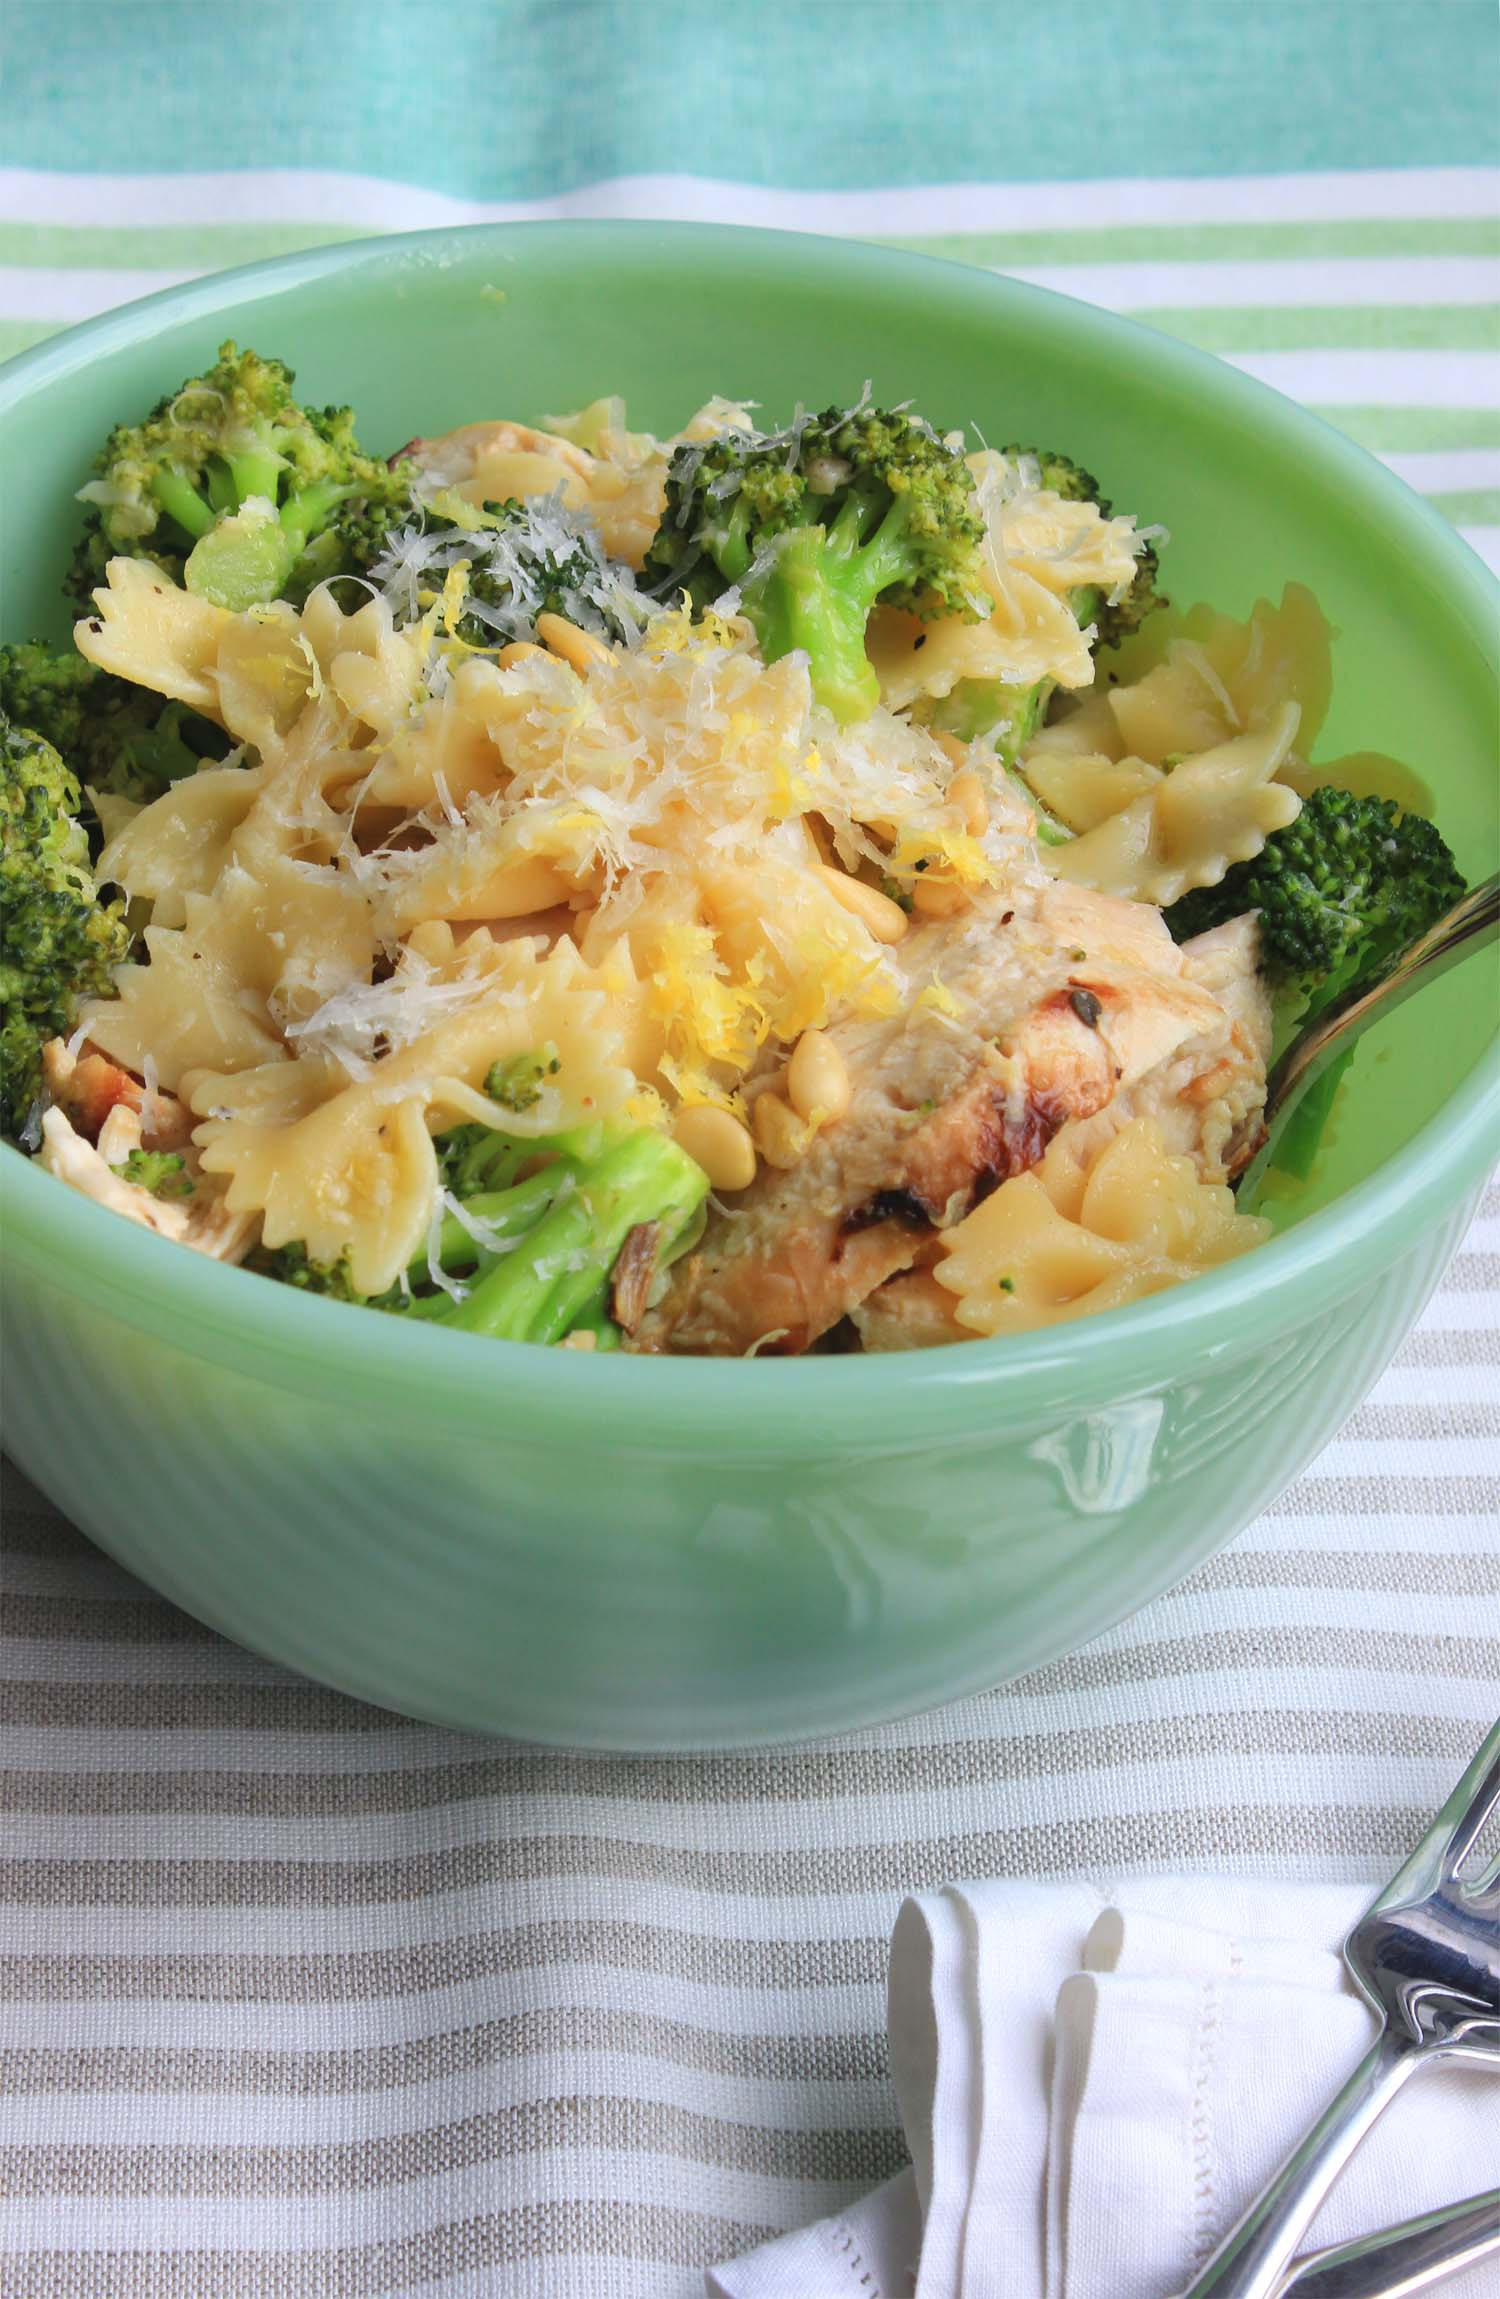 Lemon Chicken with Broccoli and Bowties  | Image:  Laura Messersmith